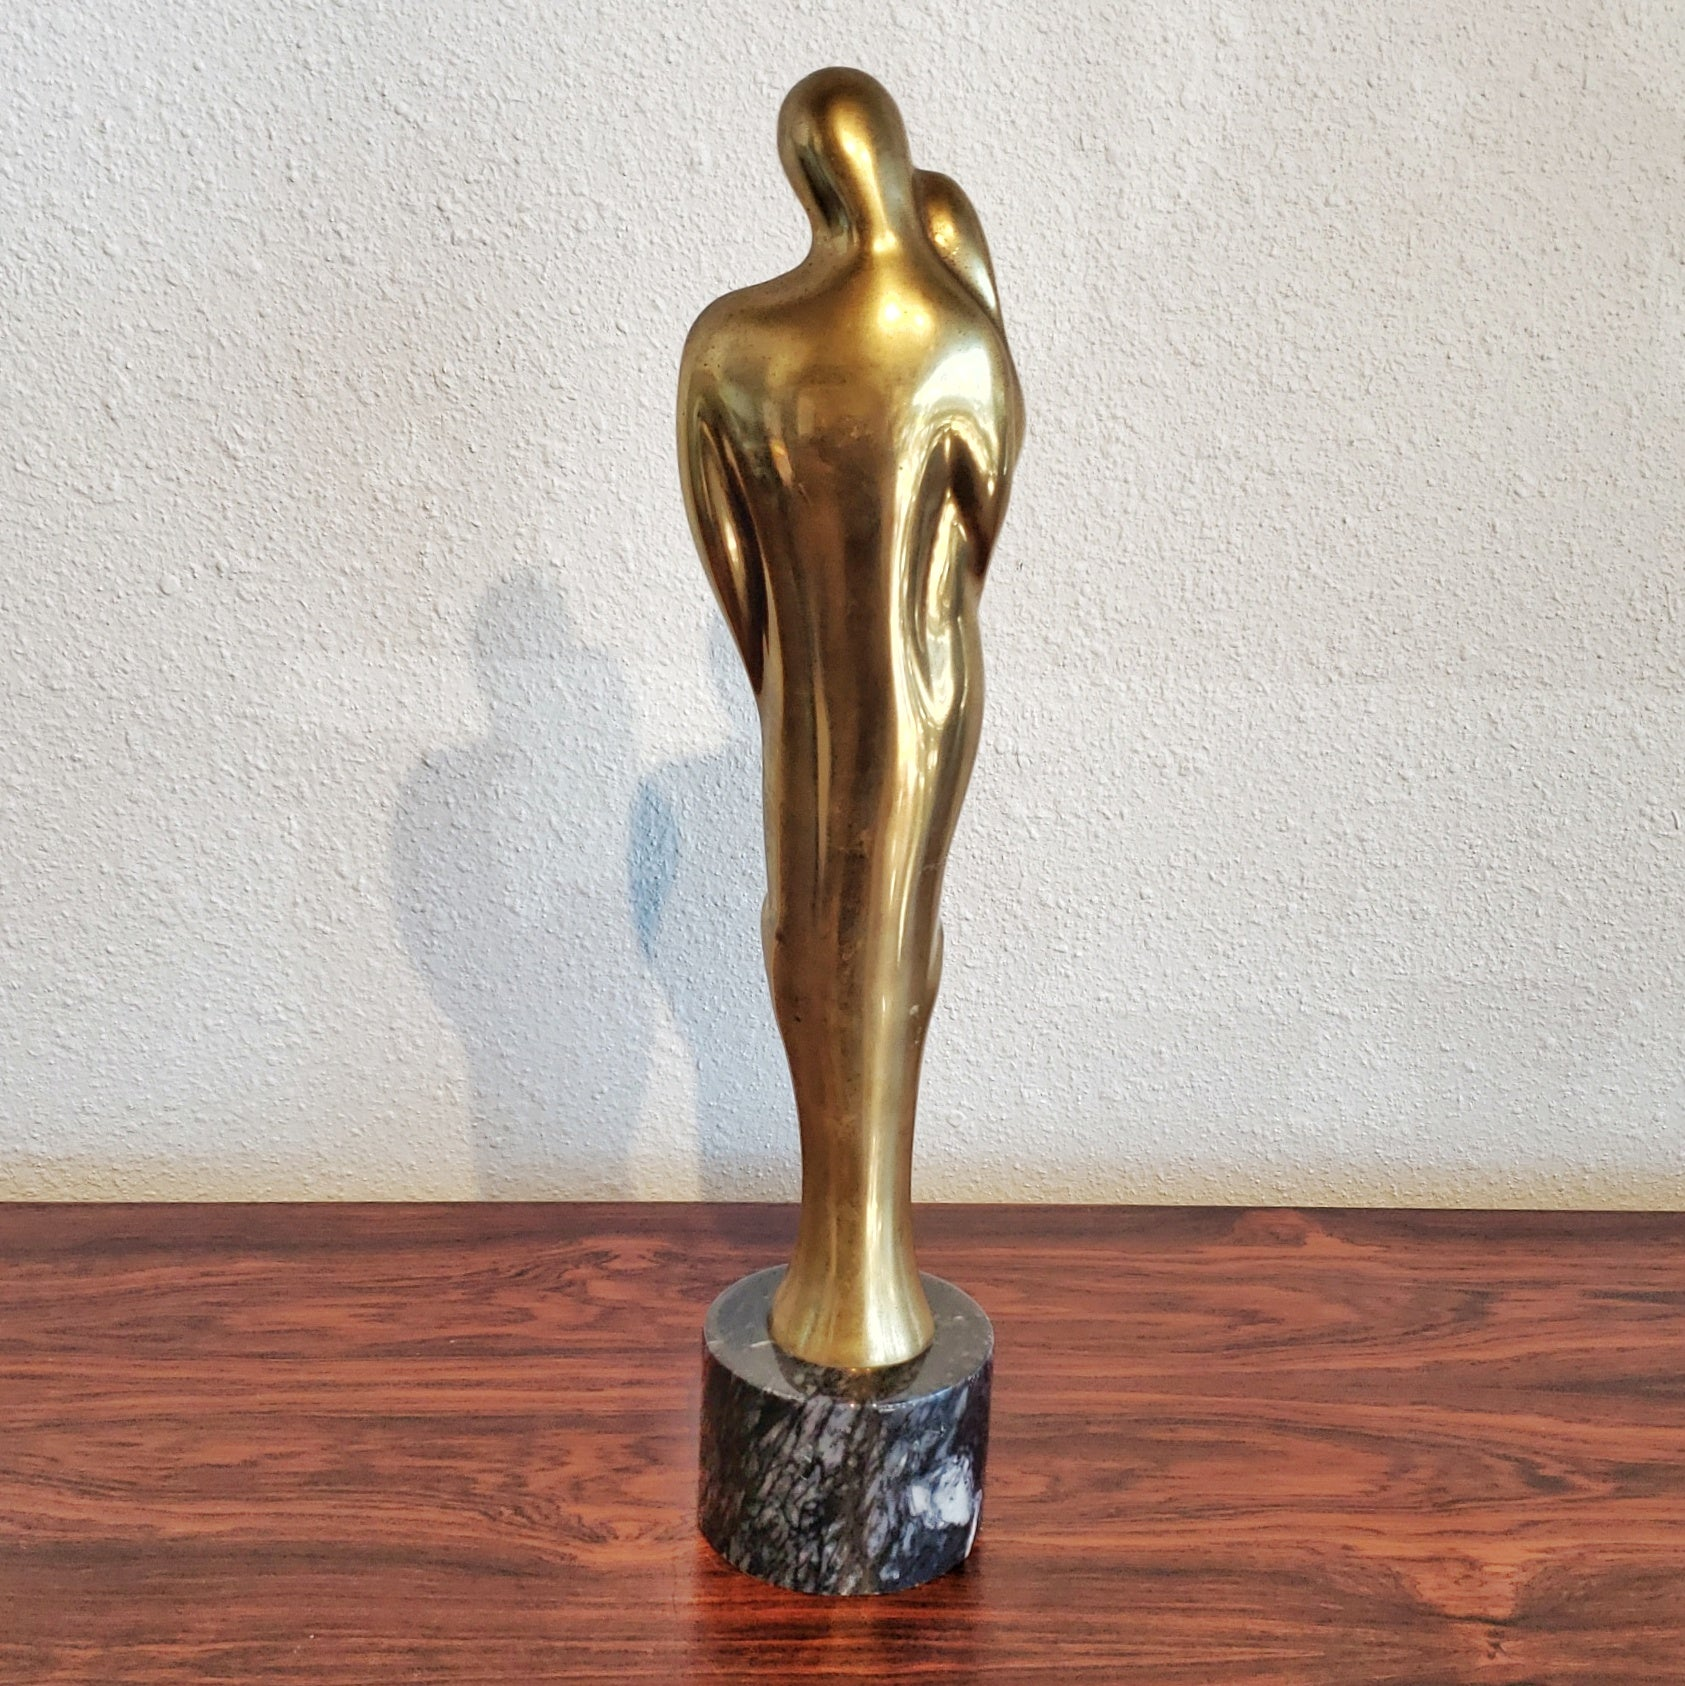 SOLID BRASS FAMILY STATUETTE AFTER JEAN ARP